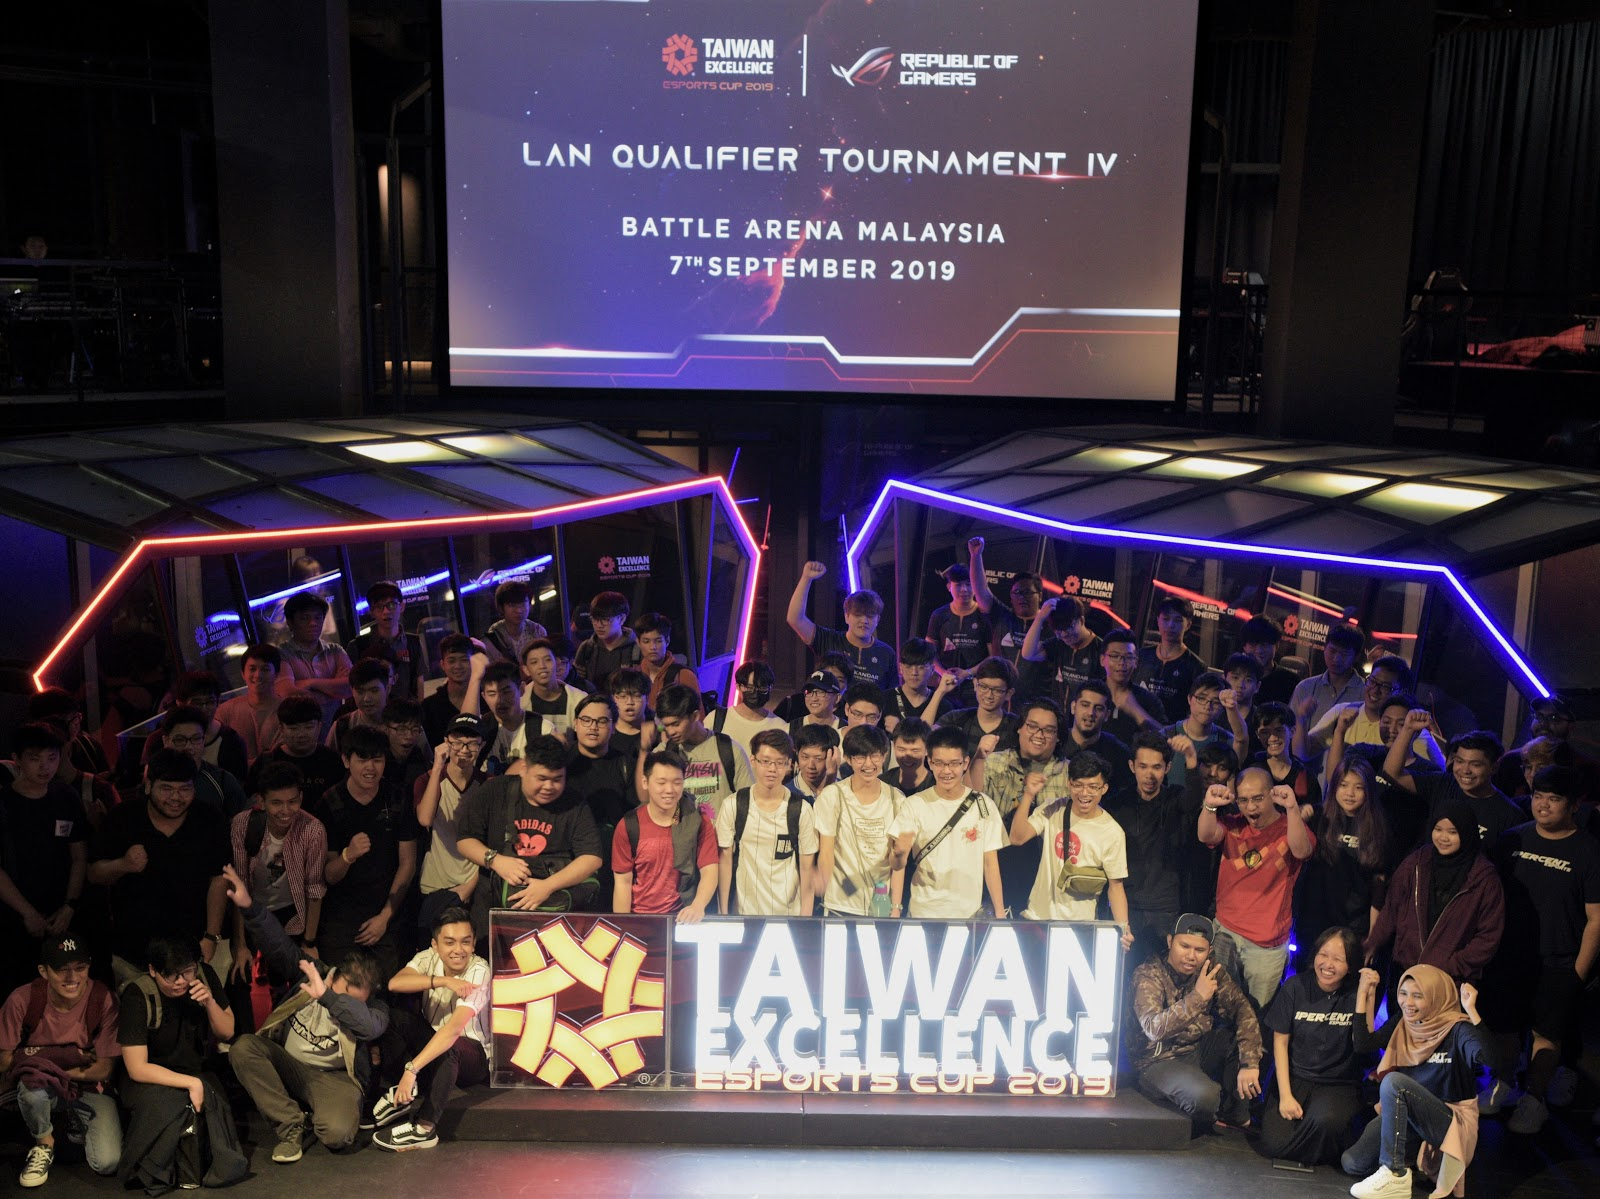 Taiwan Excellence Esports Cup 2019